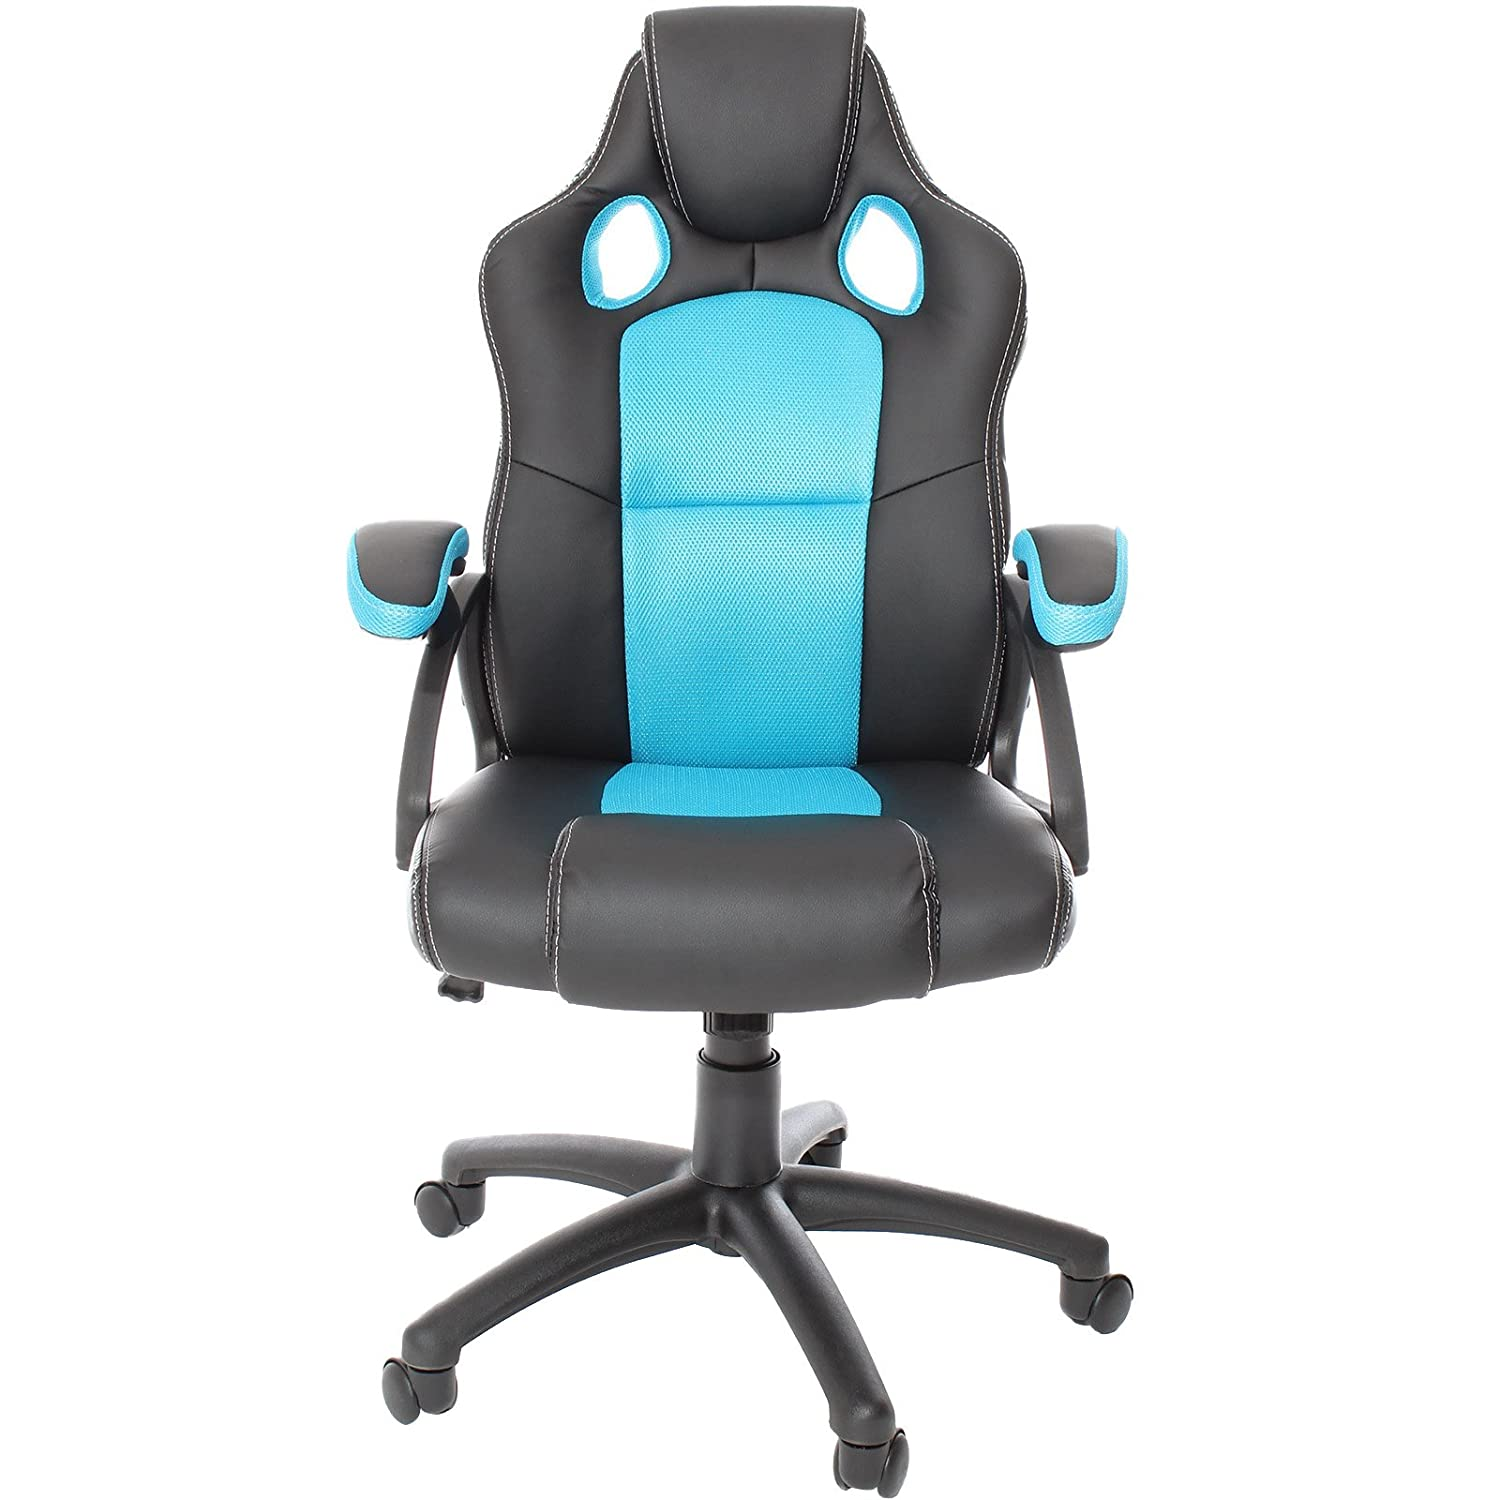 Charles Jacobs Executive Racing Style Gaming Chair Luxury Office High Back Support With Tilt Lock Mechanism